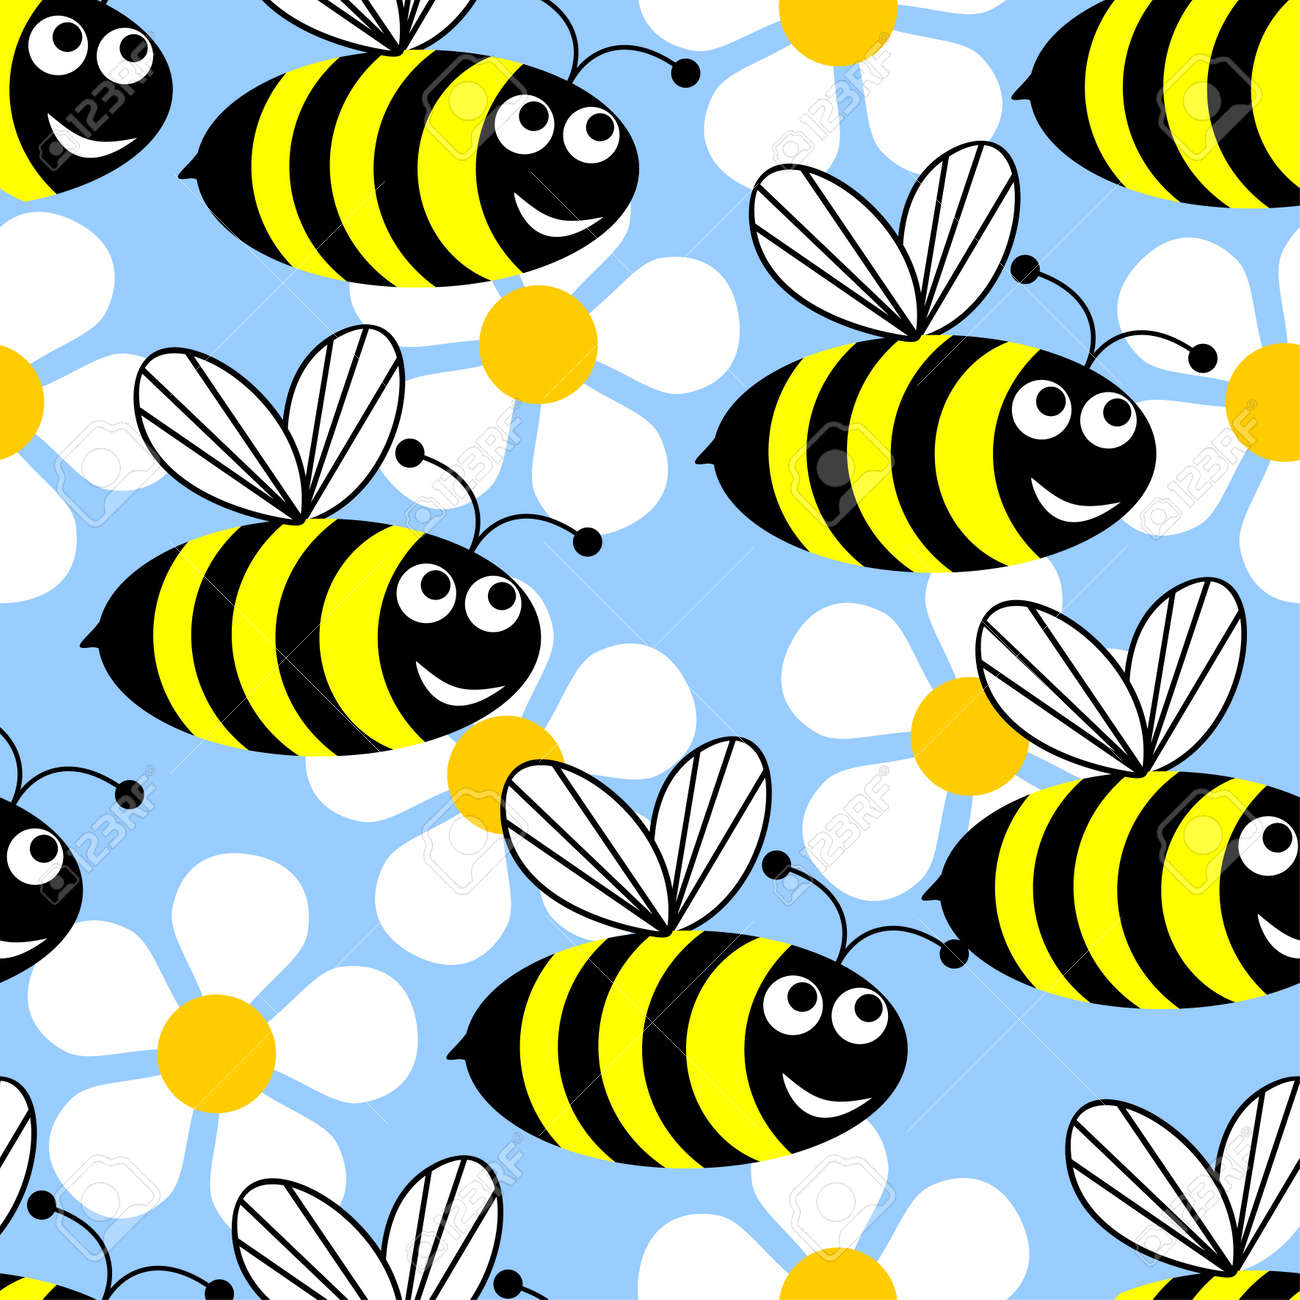 Seamless background in the form of flying bees and white flowers on a blue background. Stock Vector - 9334090